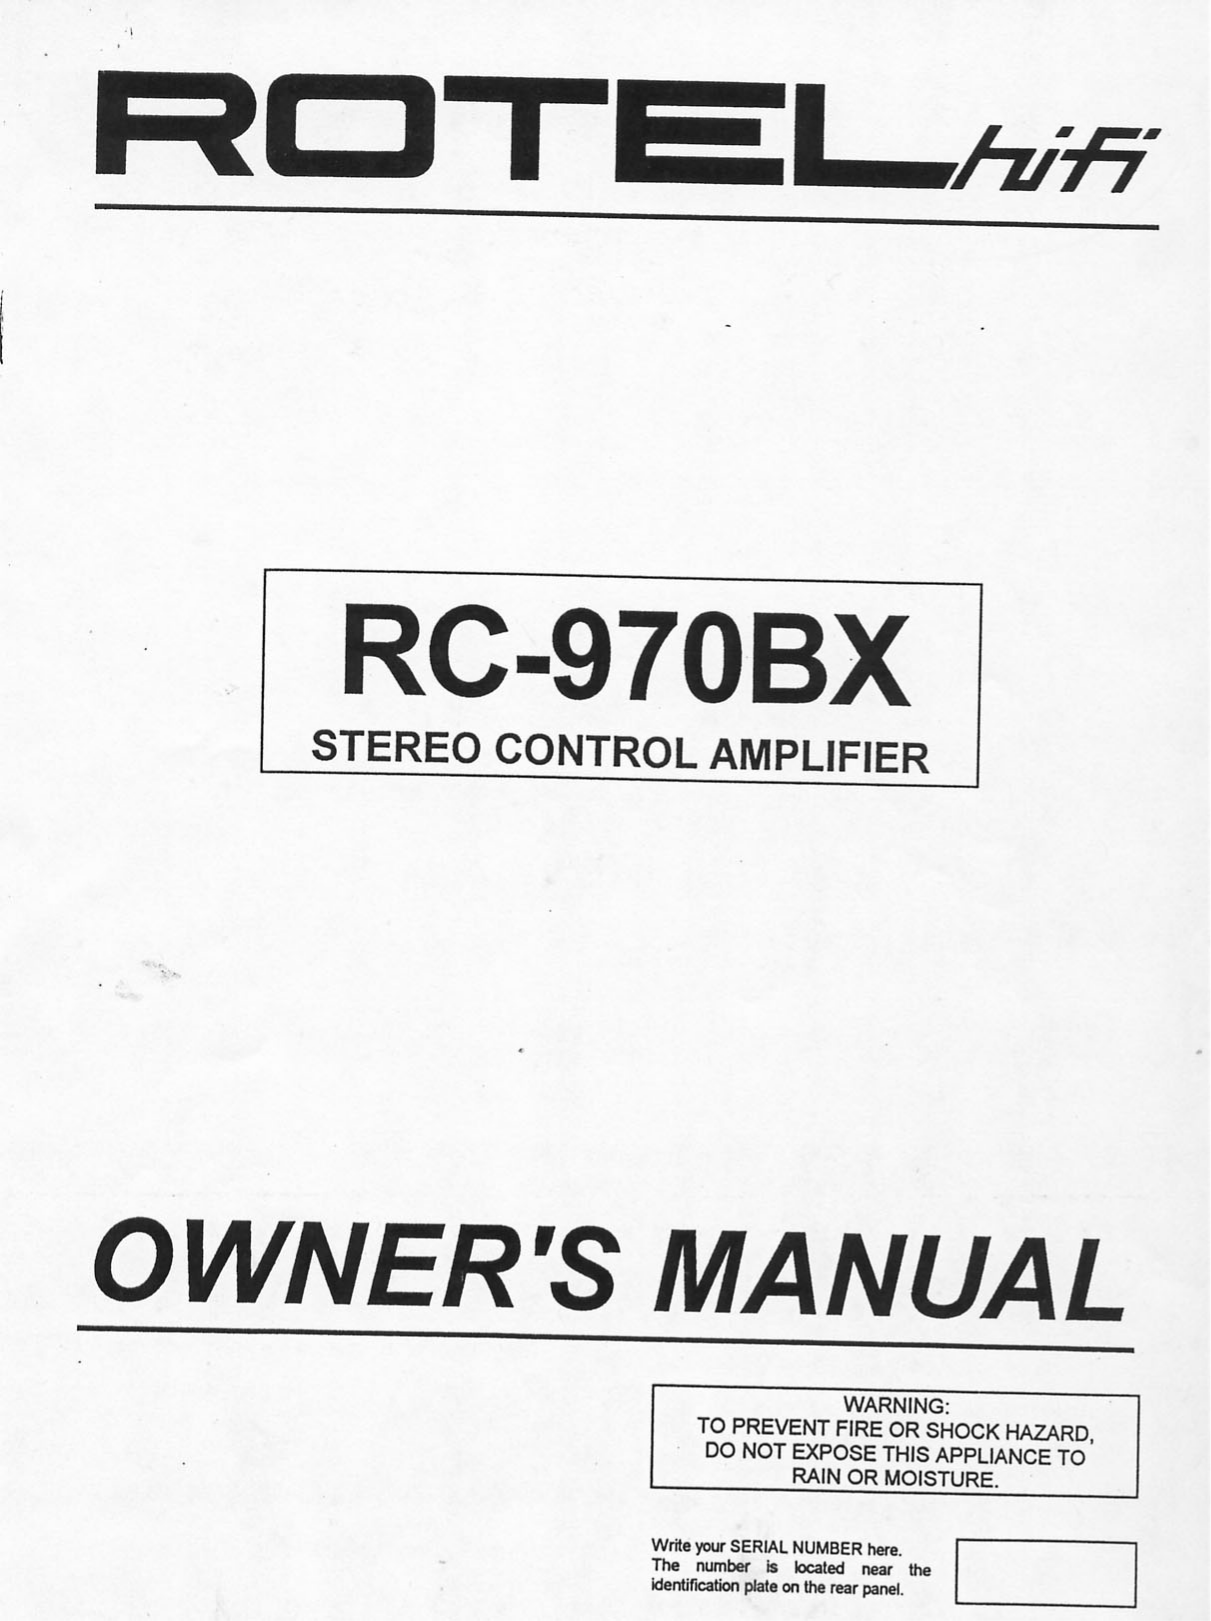 Download free pdf for Rotel RC-970BX Amp manual